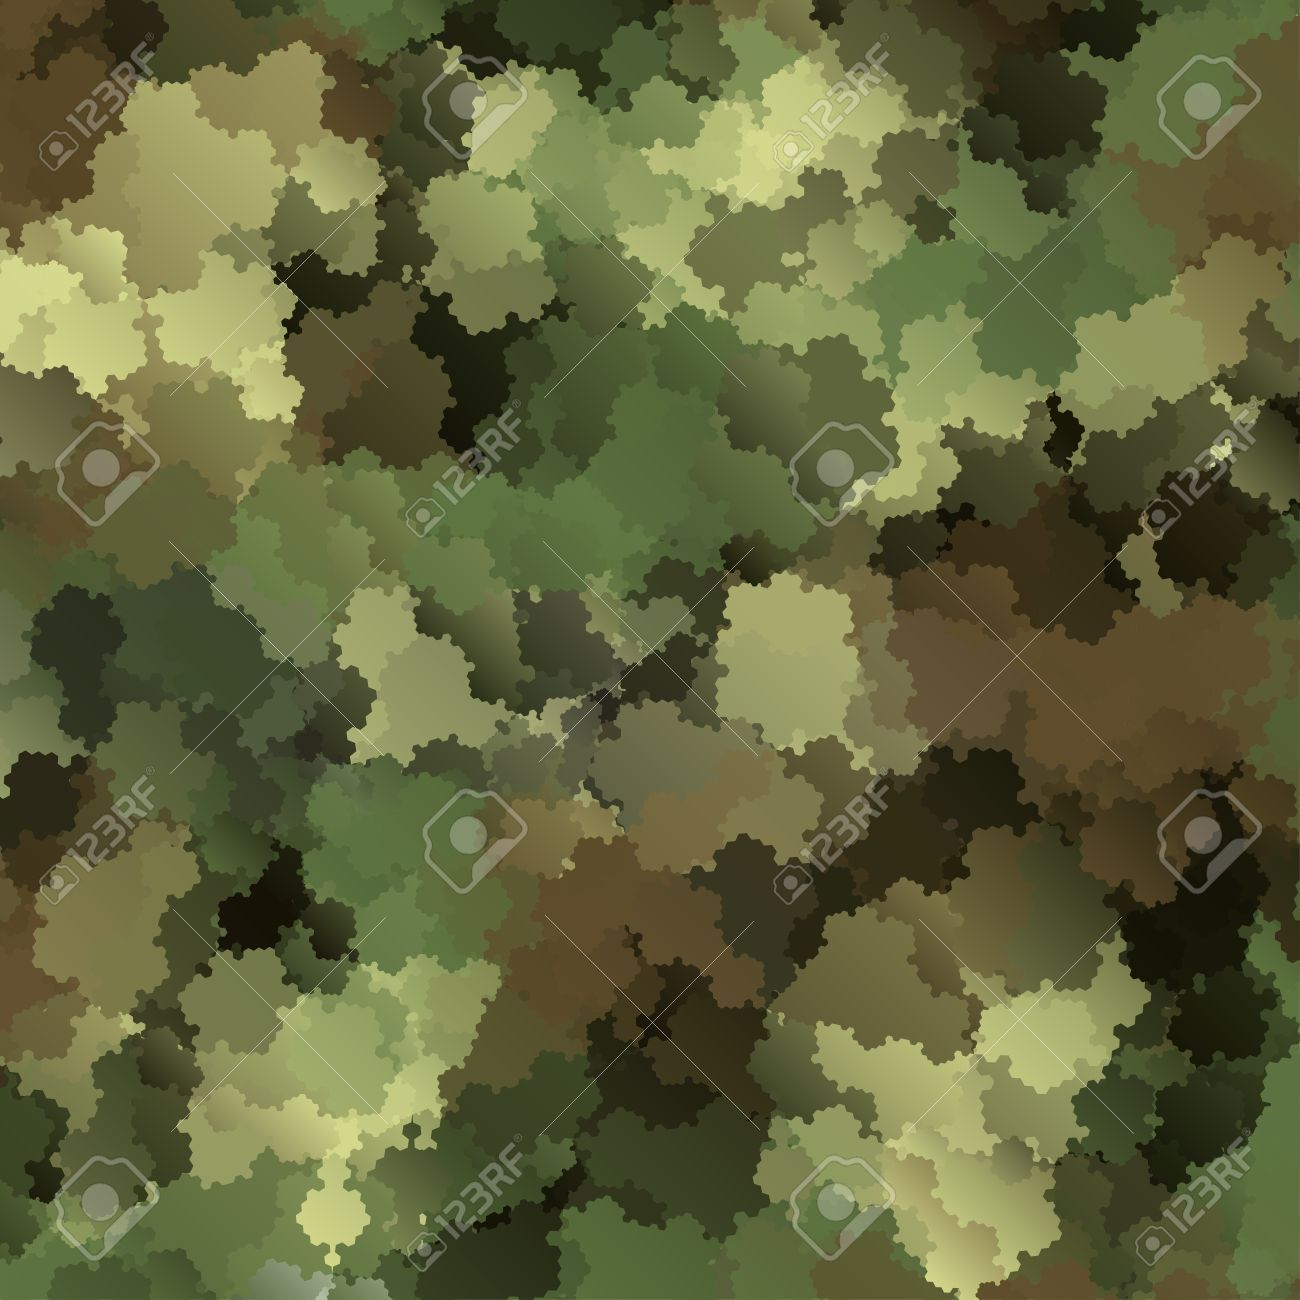 Abstract Vector Military Camouflage | Wargames - Camo | Pinterest ...